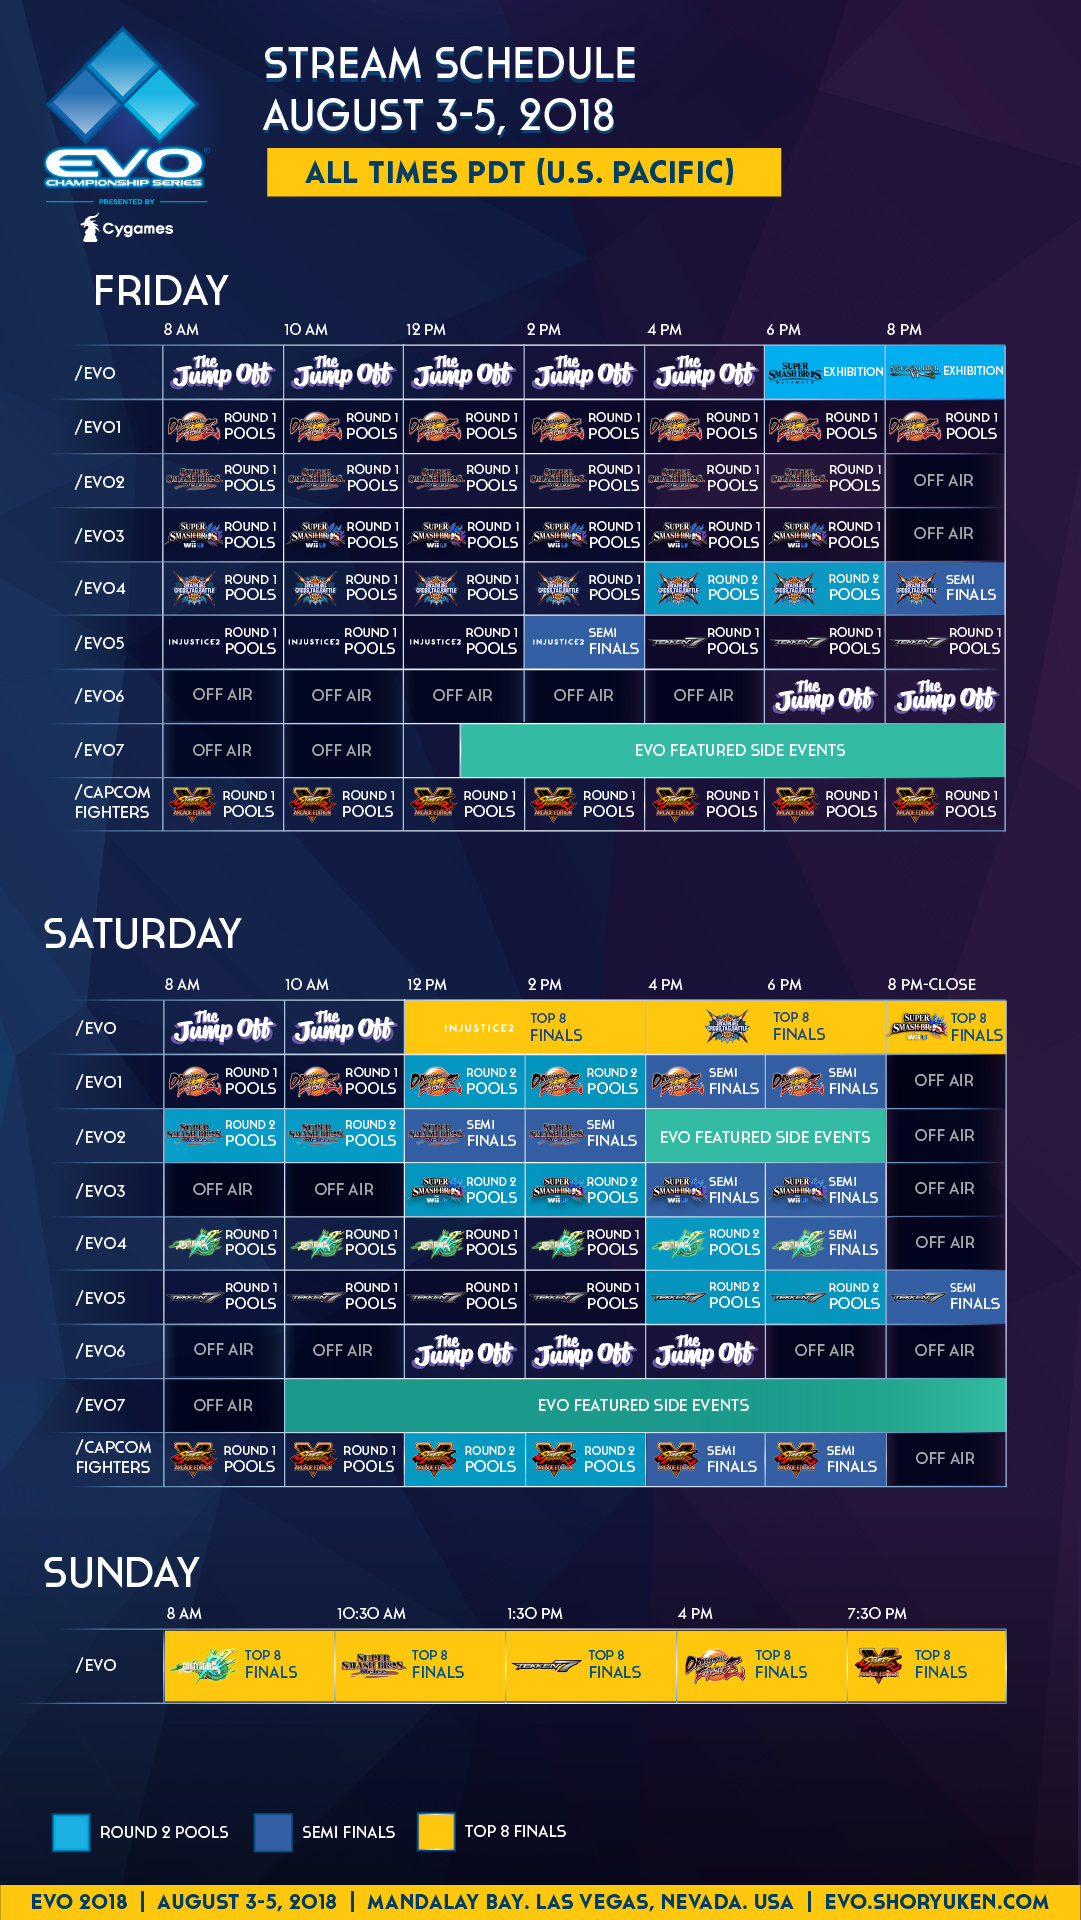 The EVO 2018 stream schedule